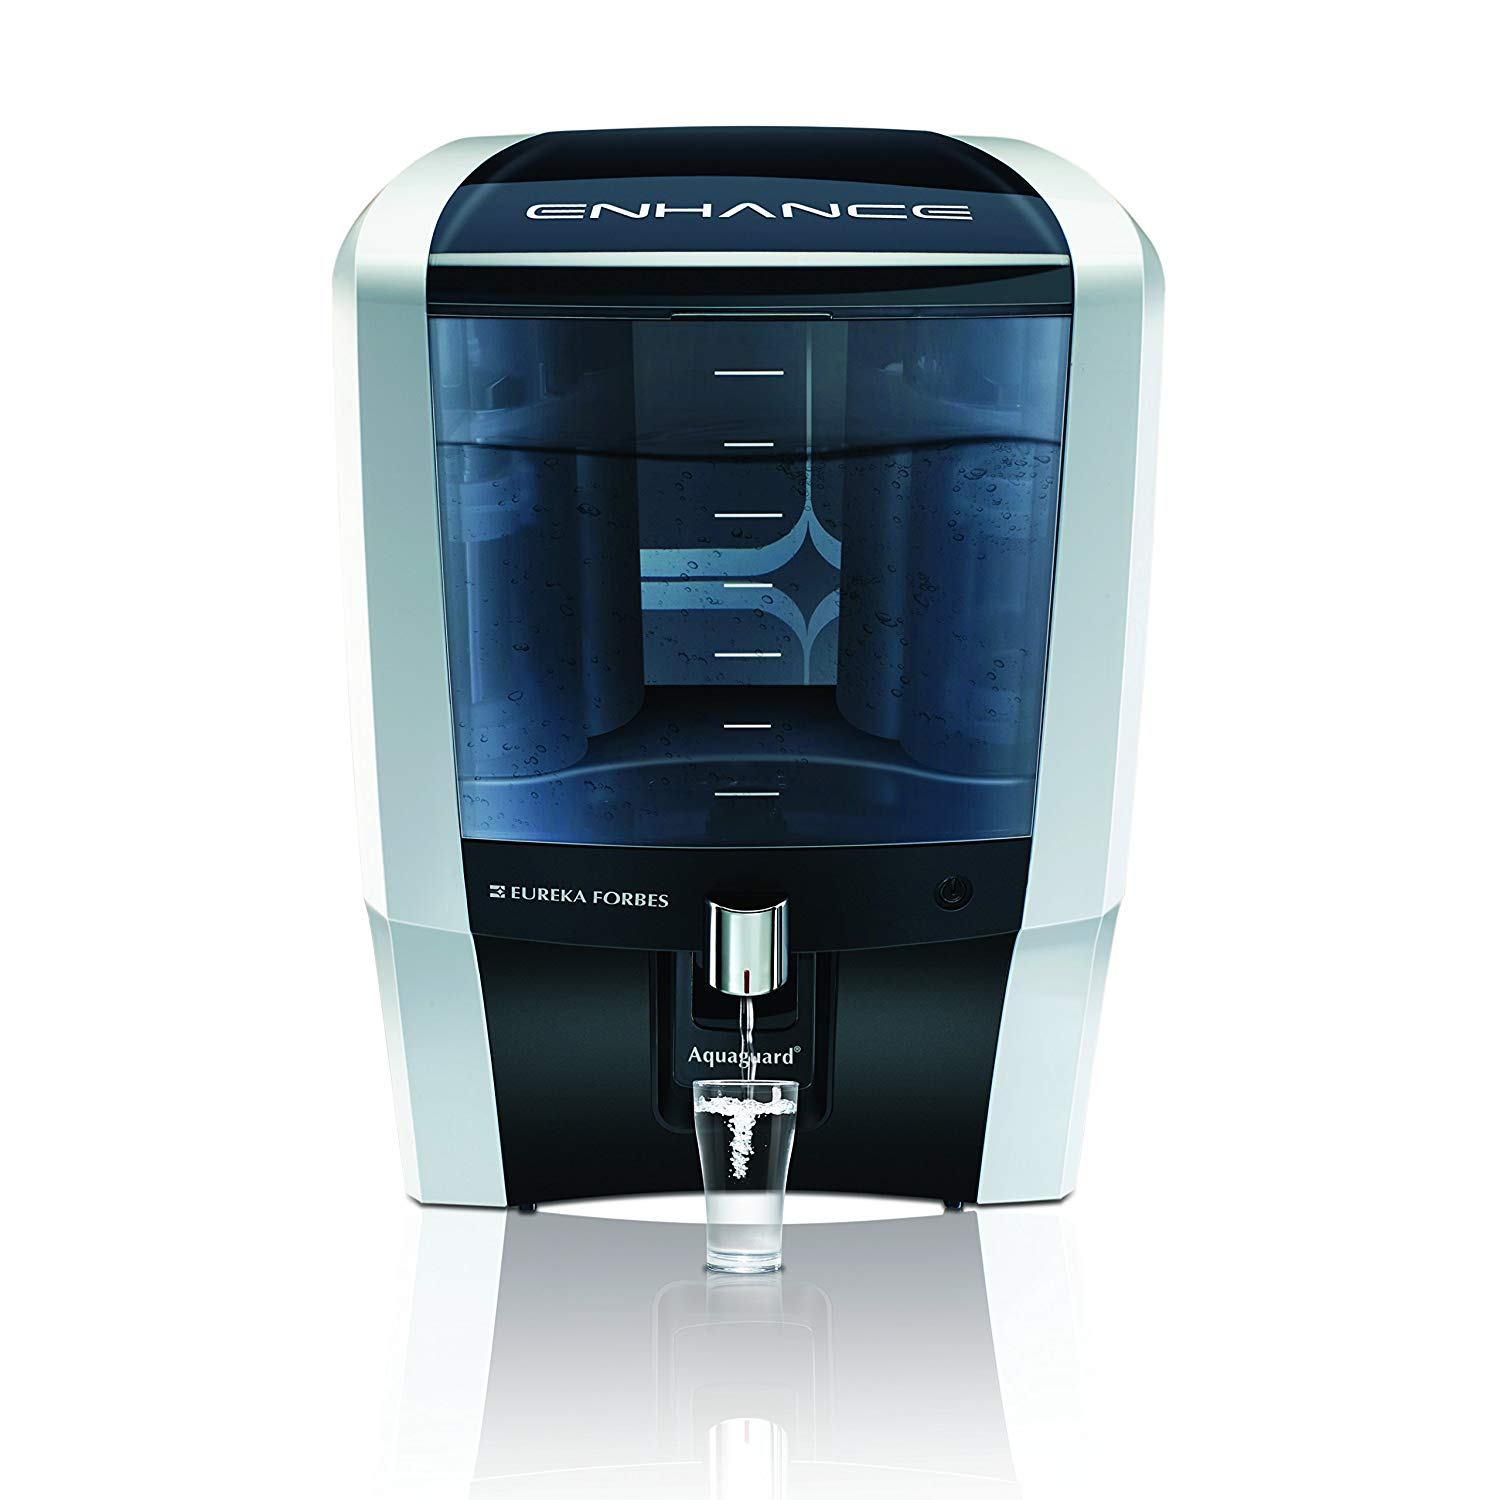 Eureka Forbes Aquaguard Enhance RO + UV Water Purifier Photo1